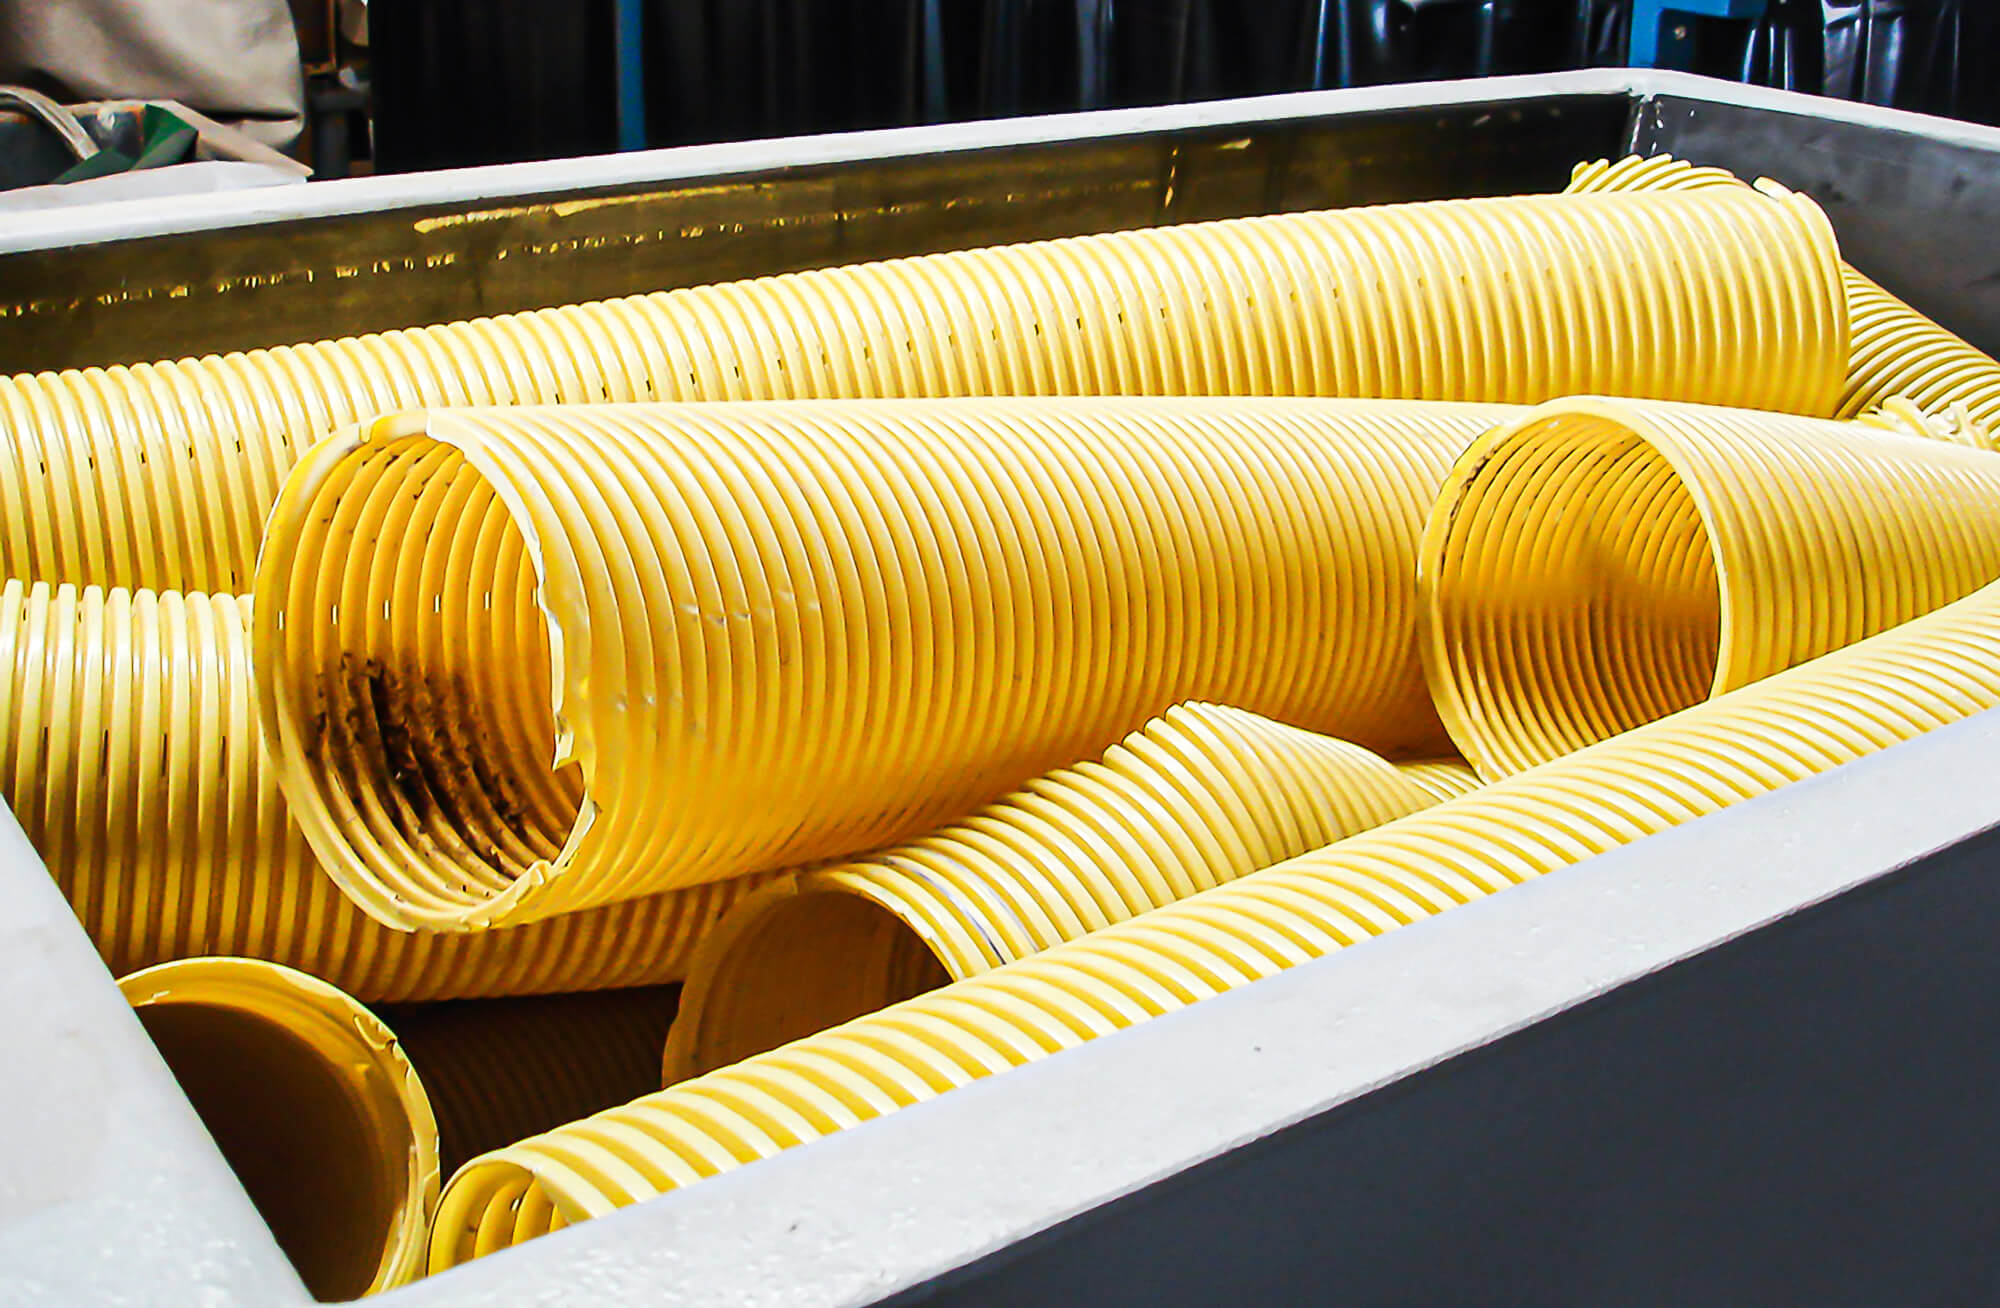 Polyvinyl chloride pipes are loaded into the WEIMA shredder